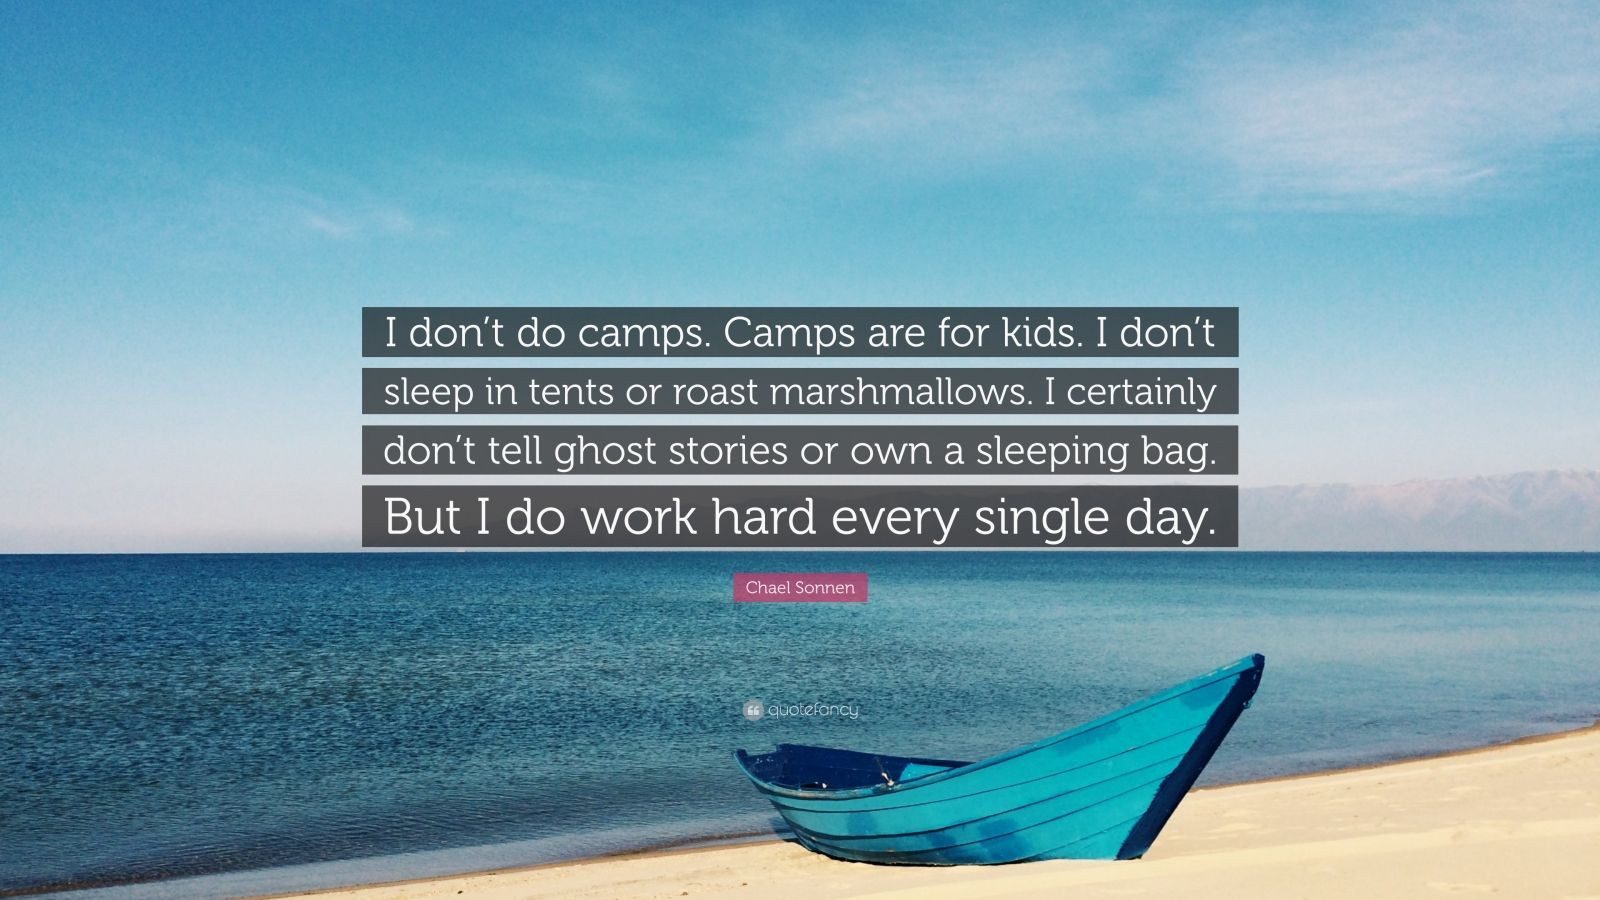 "Chael Sonnen Quote: ""I don't do camps. Camps are for kids. I don't sleep in tents or roast marshmallows. I certainly don't tell ghost stories or own a sleeping bag. But I do work hard every single day."""